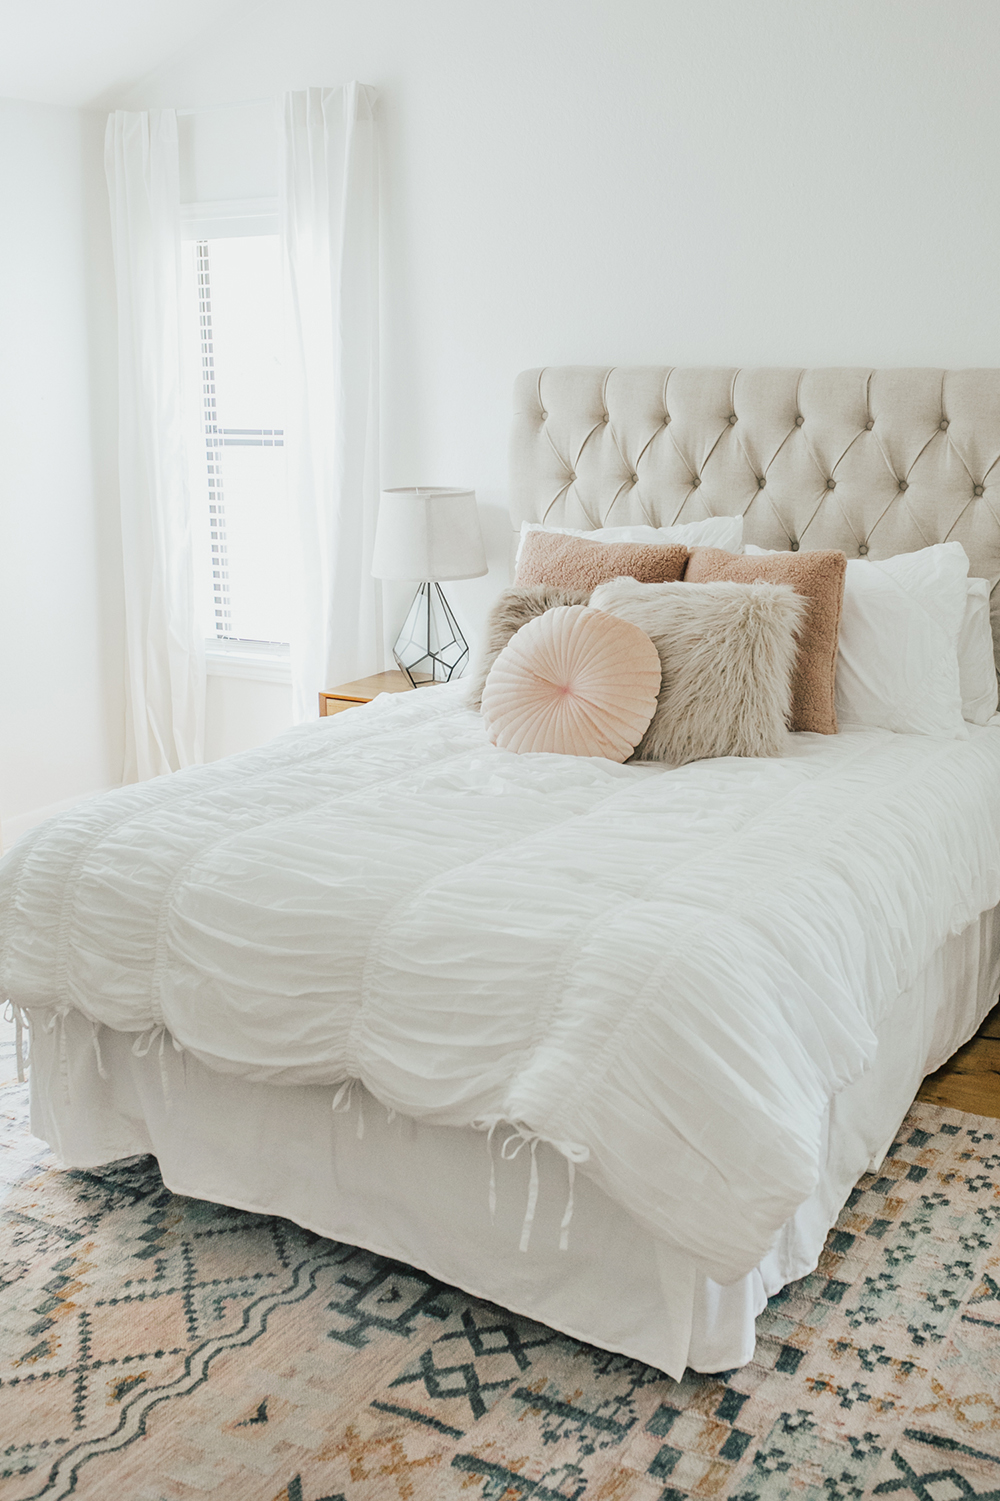 livvyland-blog-olivia-watson-bedroom-bedding-decor-decoration-blush-white-interiors-urban-outfitters-6